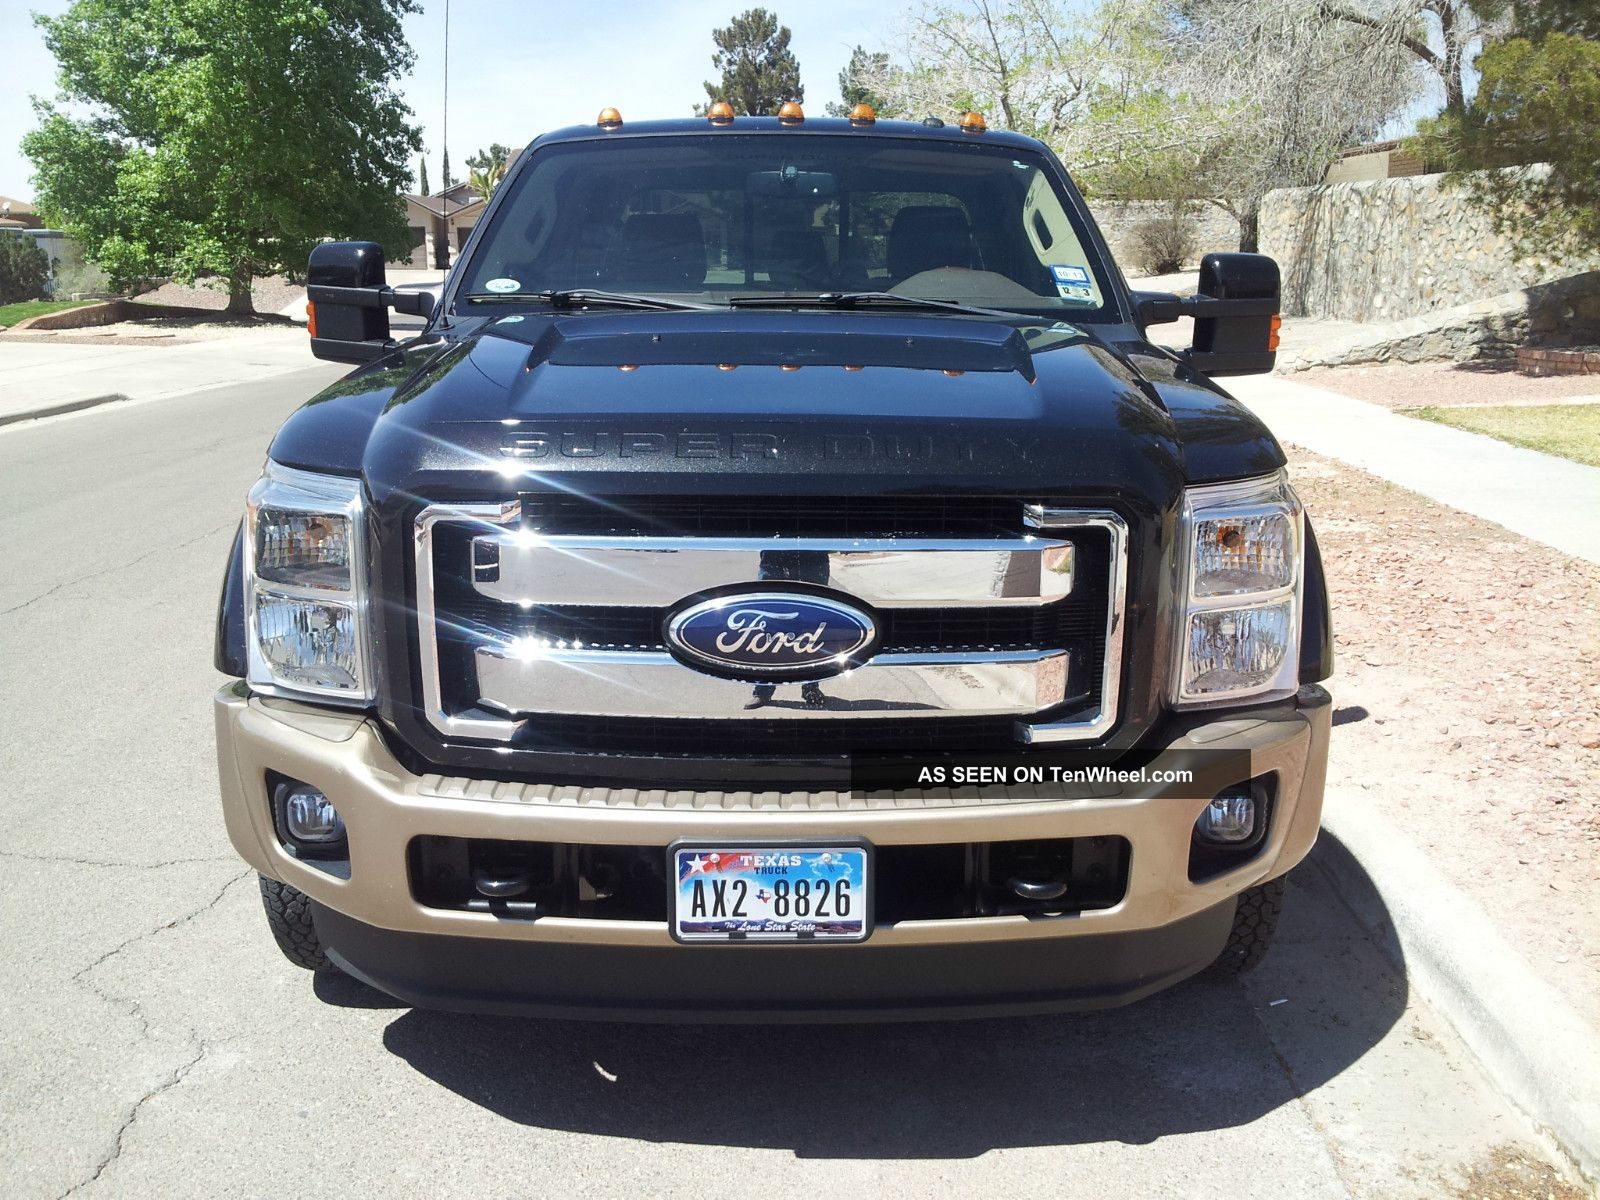 2011 ford f450 4x4 dually king ranch crew cab. Black Bedroom Furniture Sets. Home Design Ideas